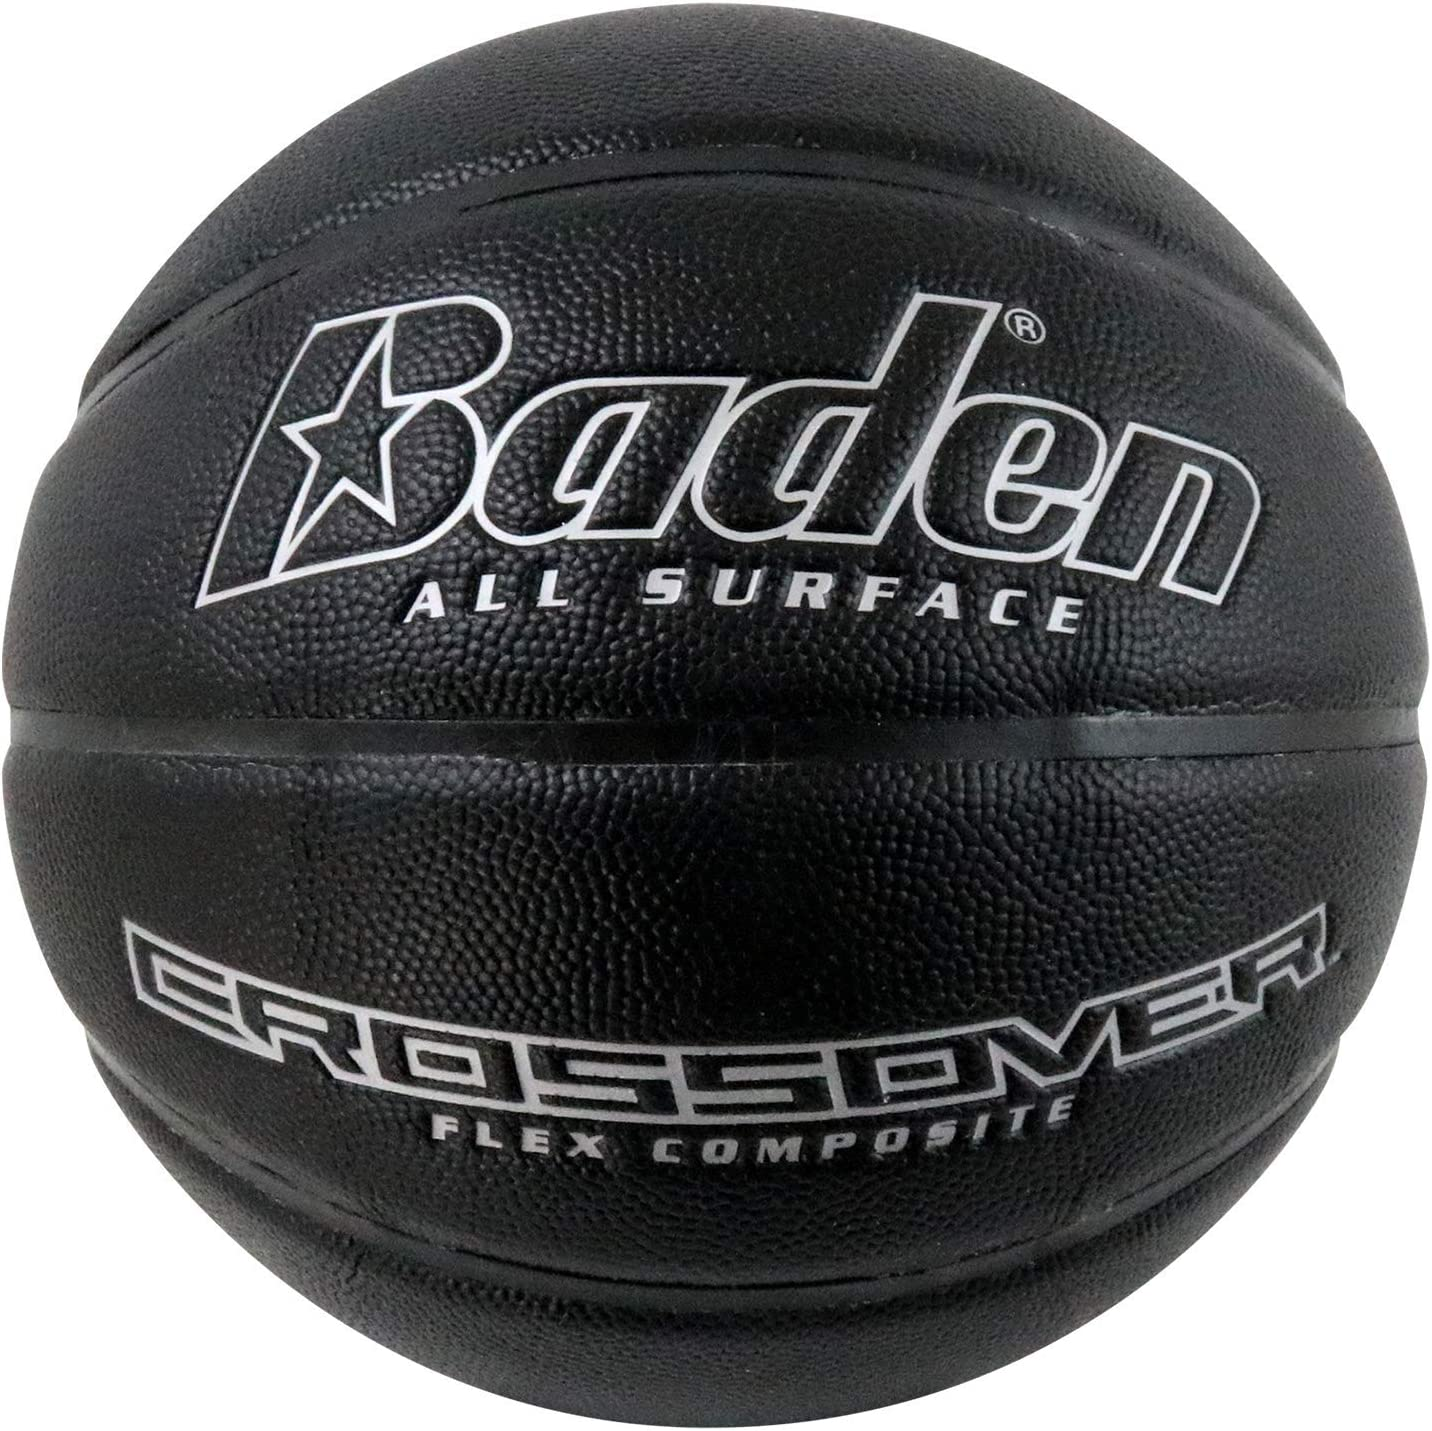 Baden Crossover Limited time sale Composite quality assurance Basketball Outdoor Indoor